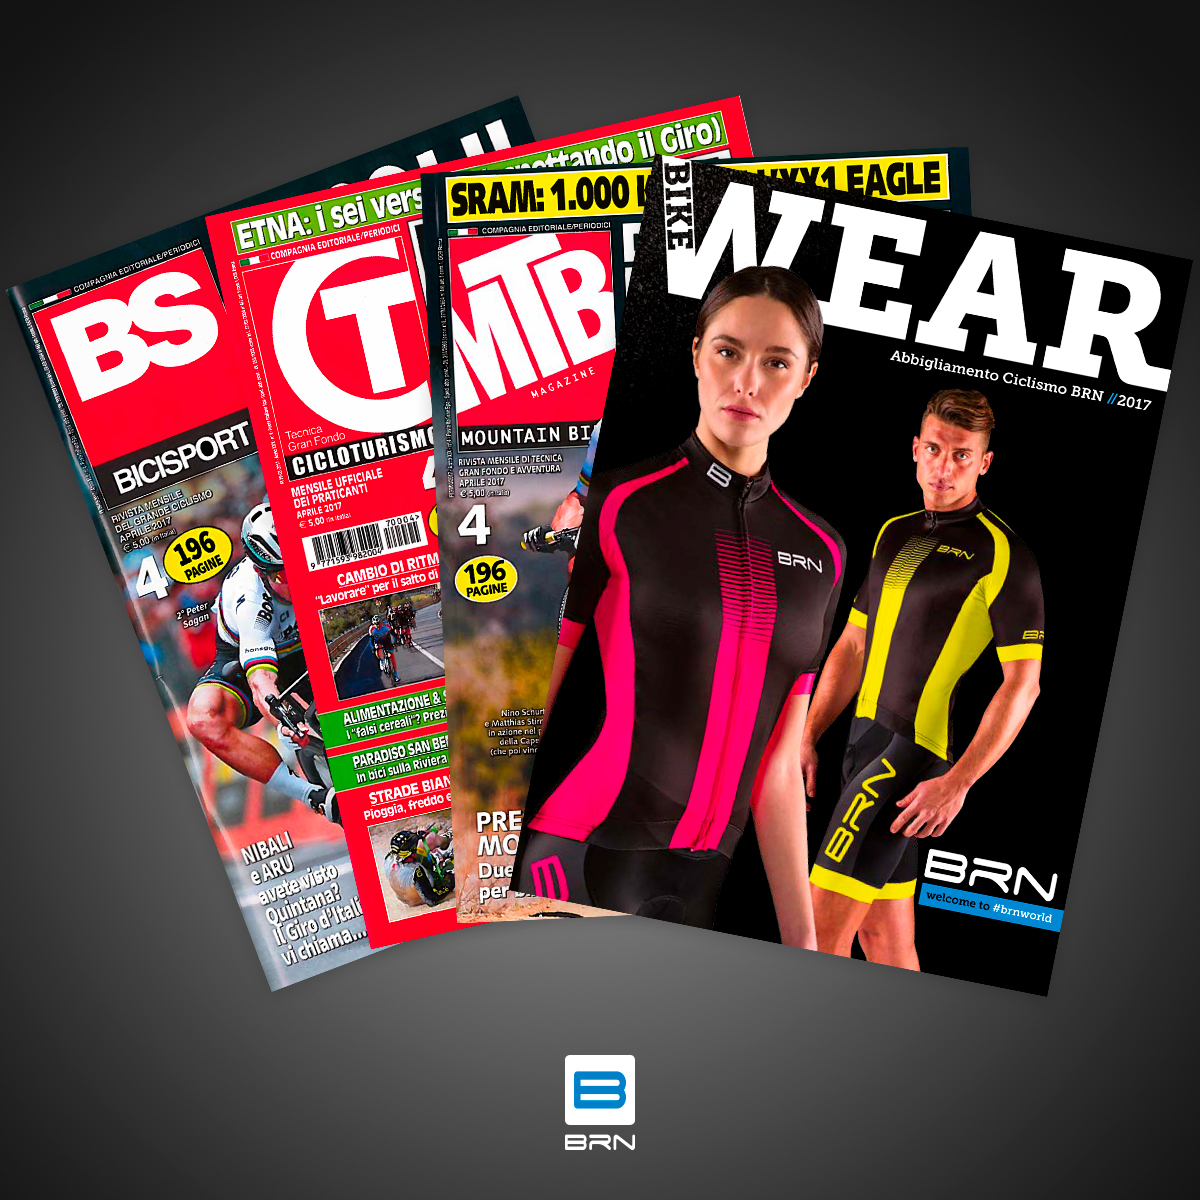 BRN Bike Wear inserto in edicola